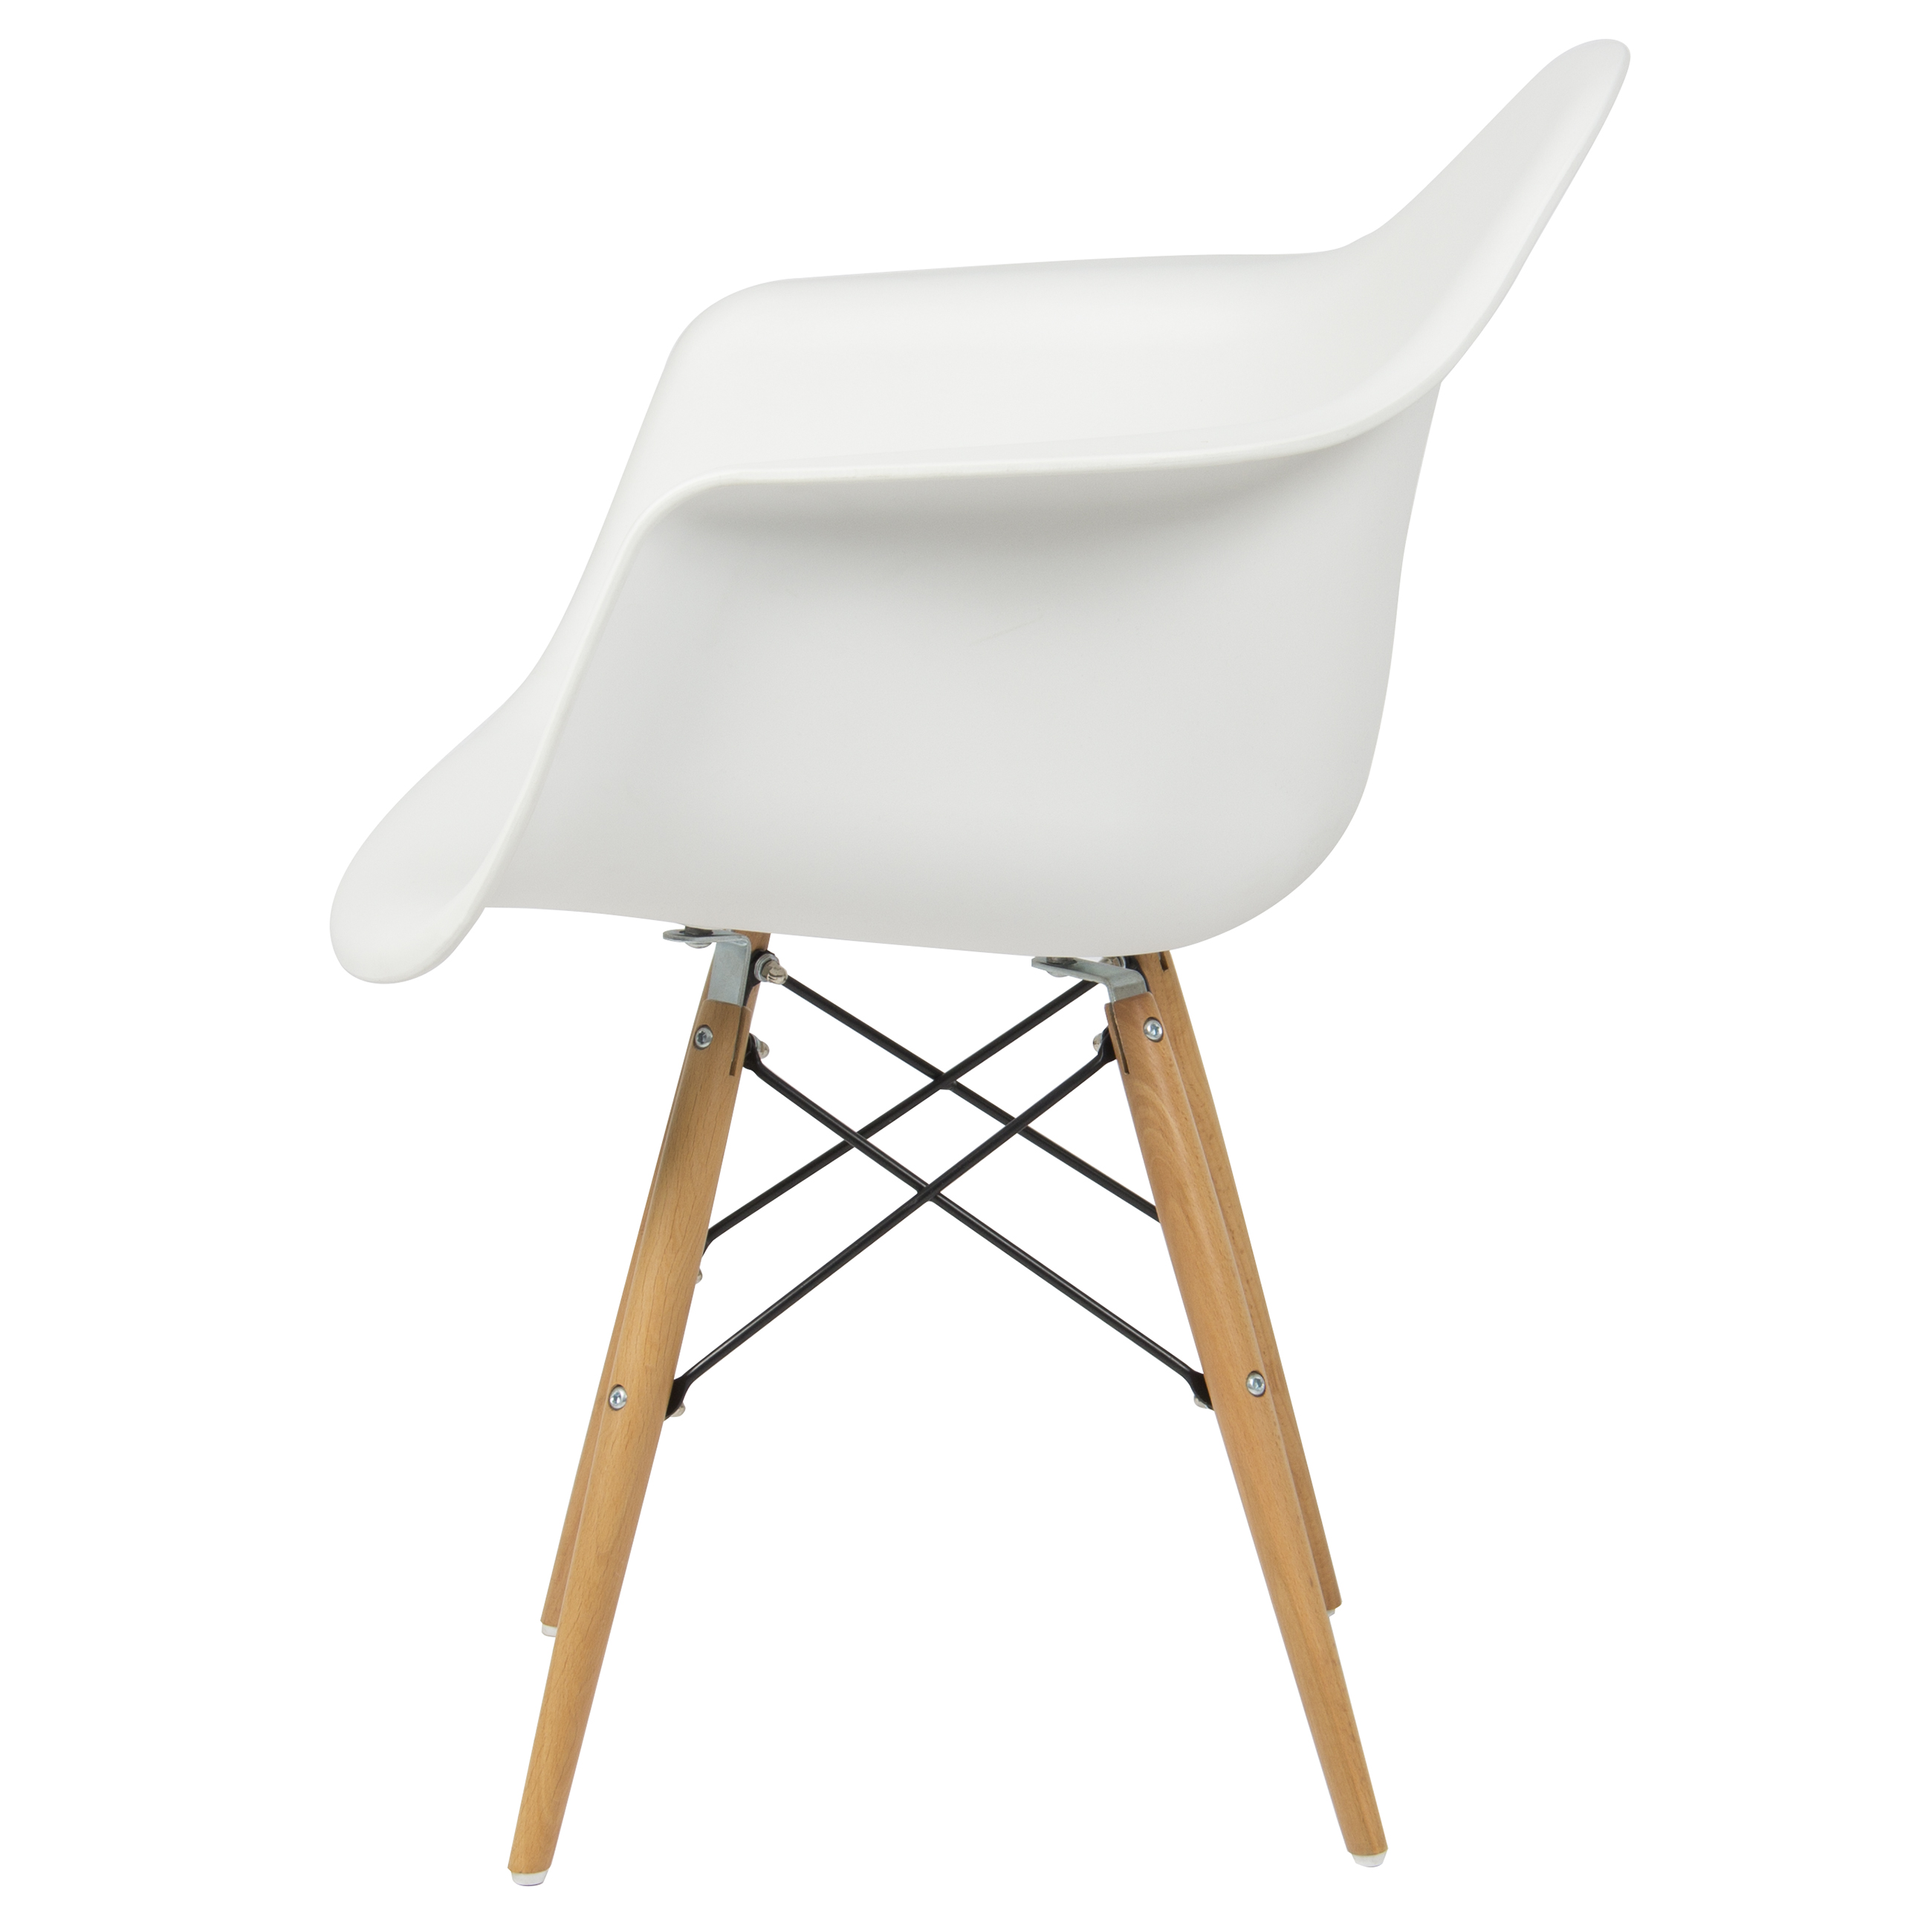 modern chair plastic. Best Choice Products Eames Style Armchair Mid Century Modern Molded Plastic Shell Arm Chair - Walmart.com L